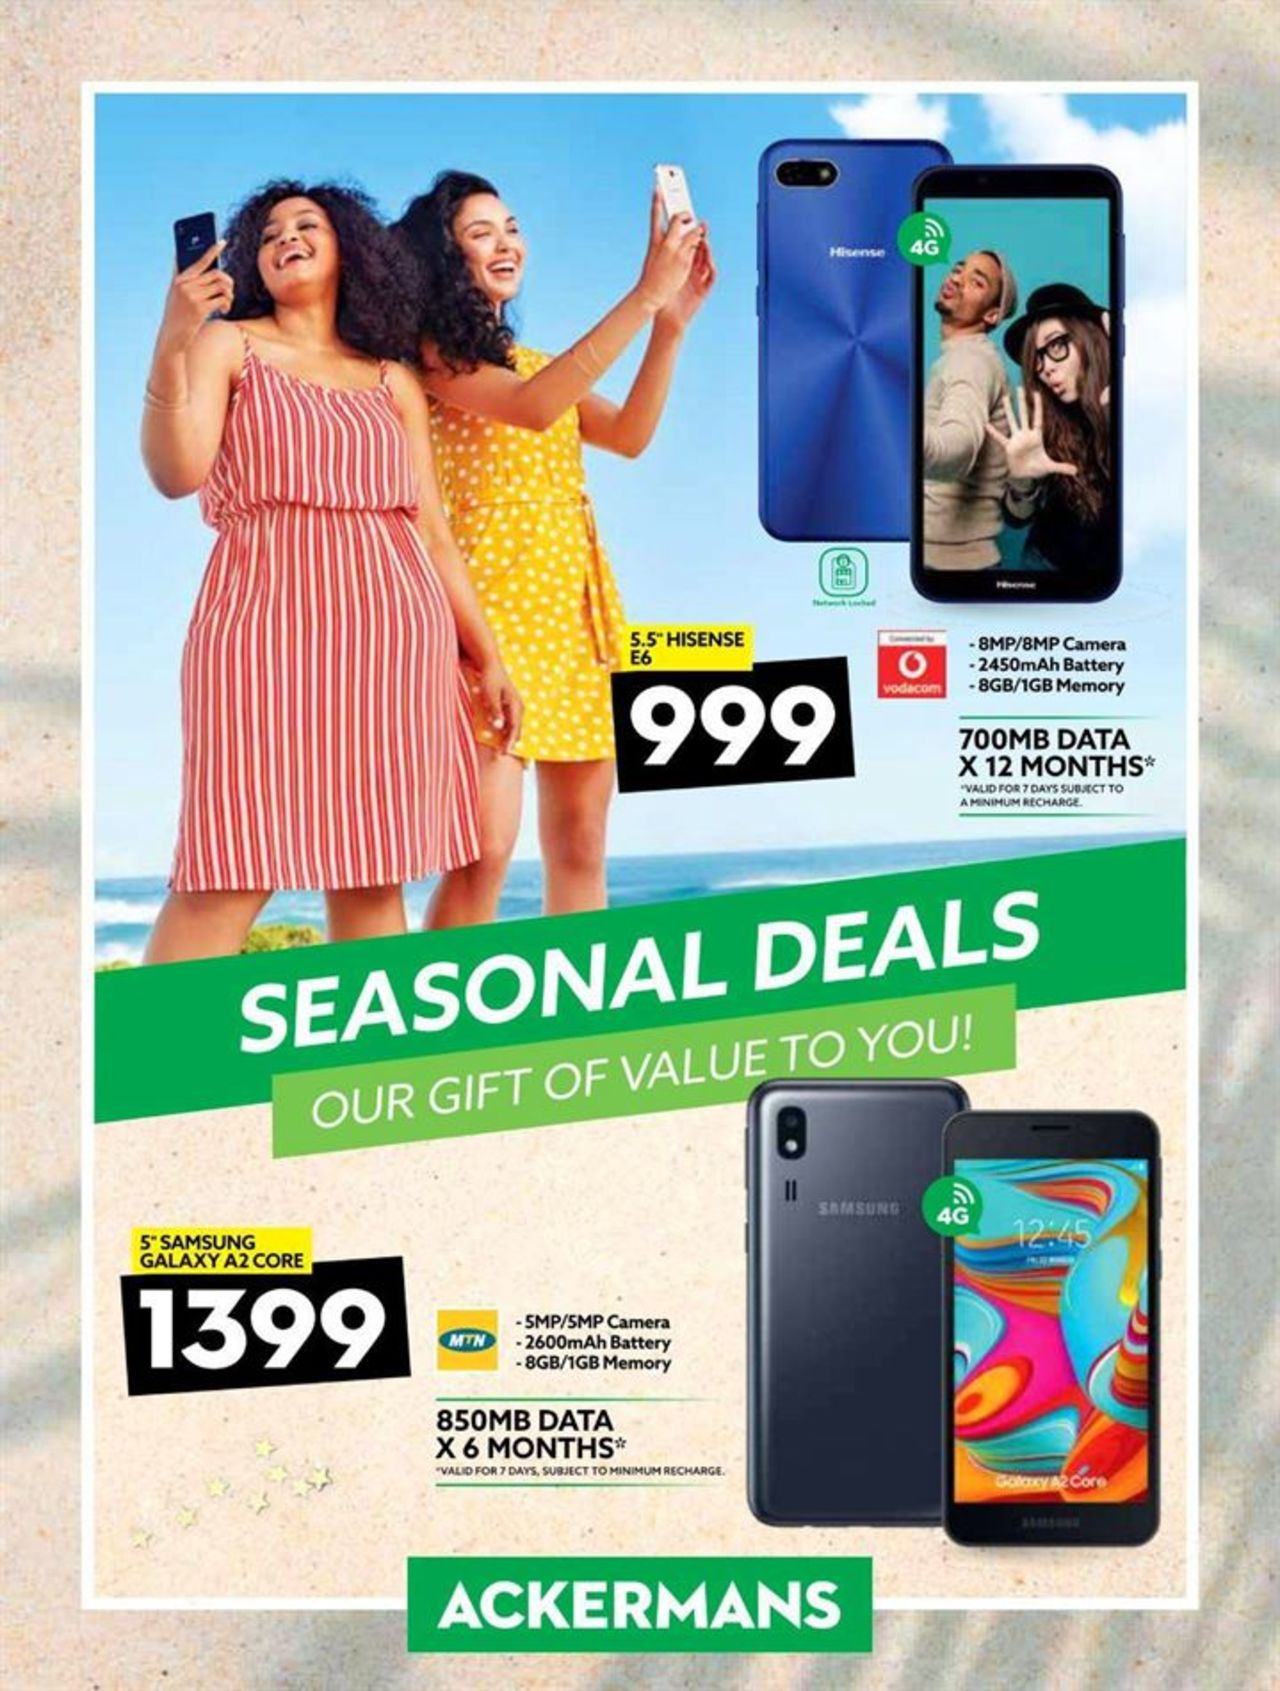 ackermans specials cellular catalogue 27 december 2019